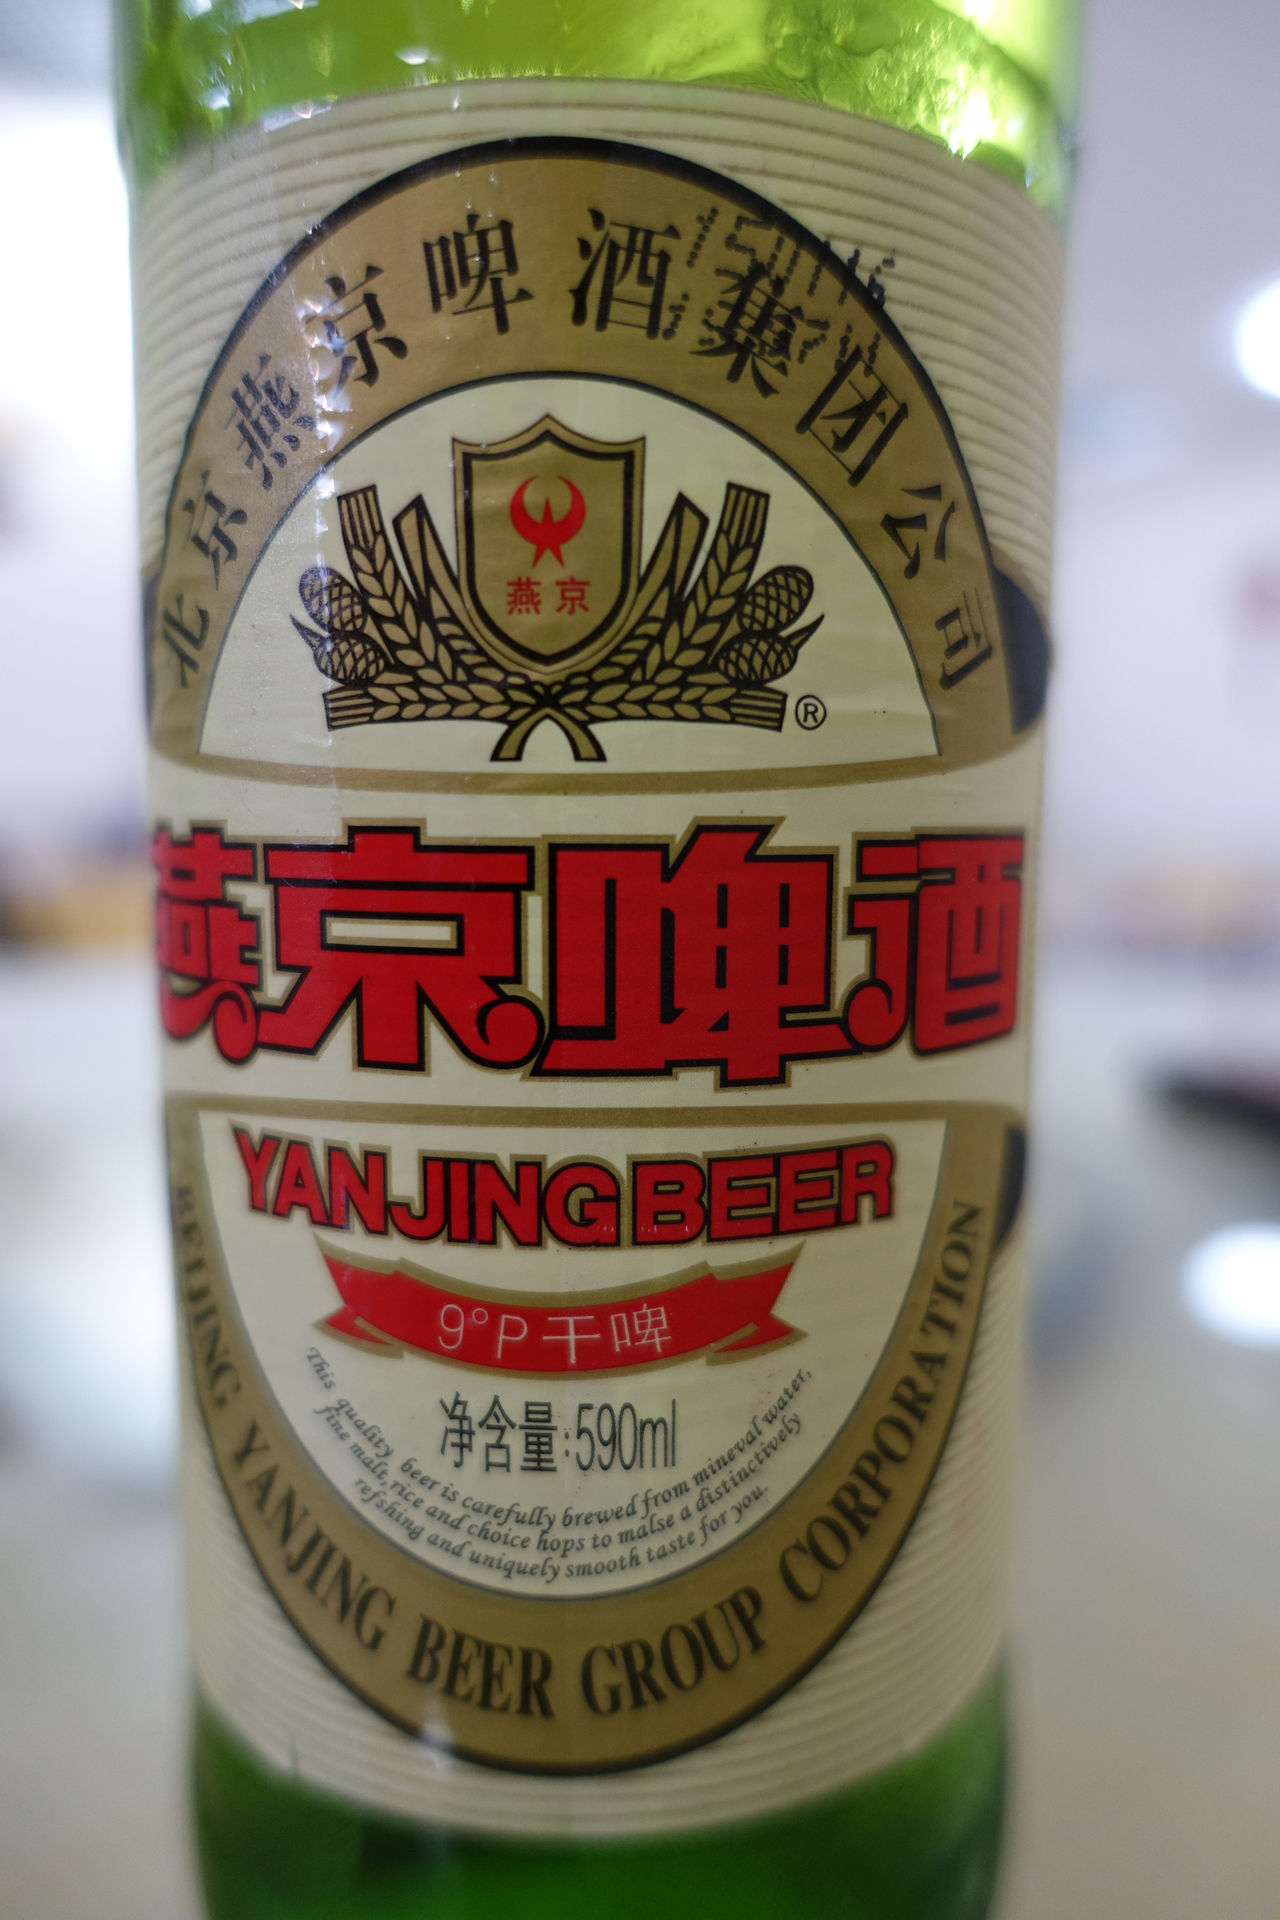 Yanjing Beer Beer Bottle Beer Label China Close-up Communication Day Design Indoors  Label Labels No People QingDao Beer Text Yanjing Beer